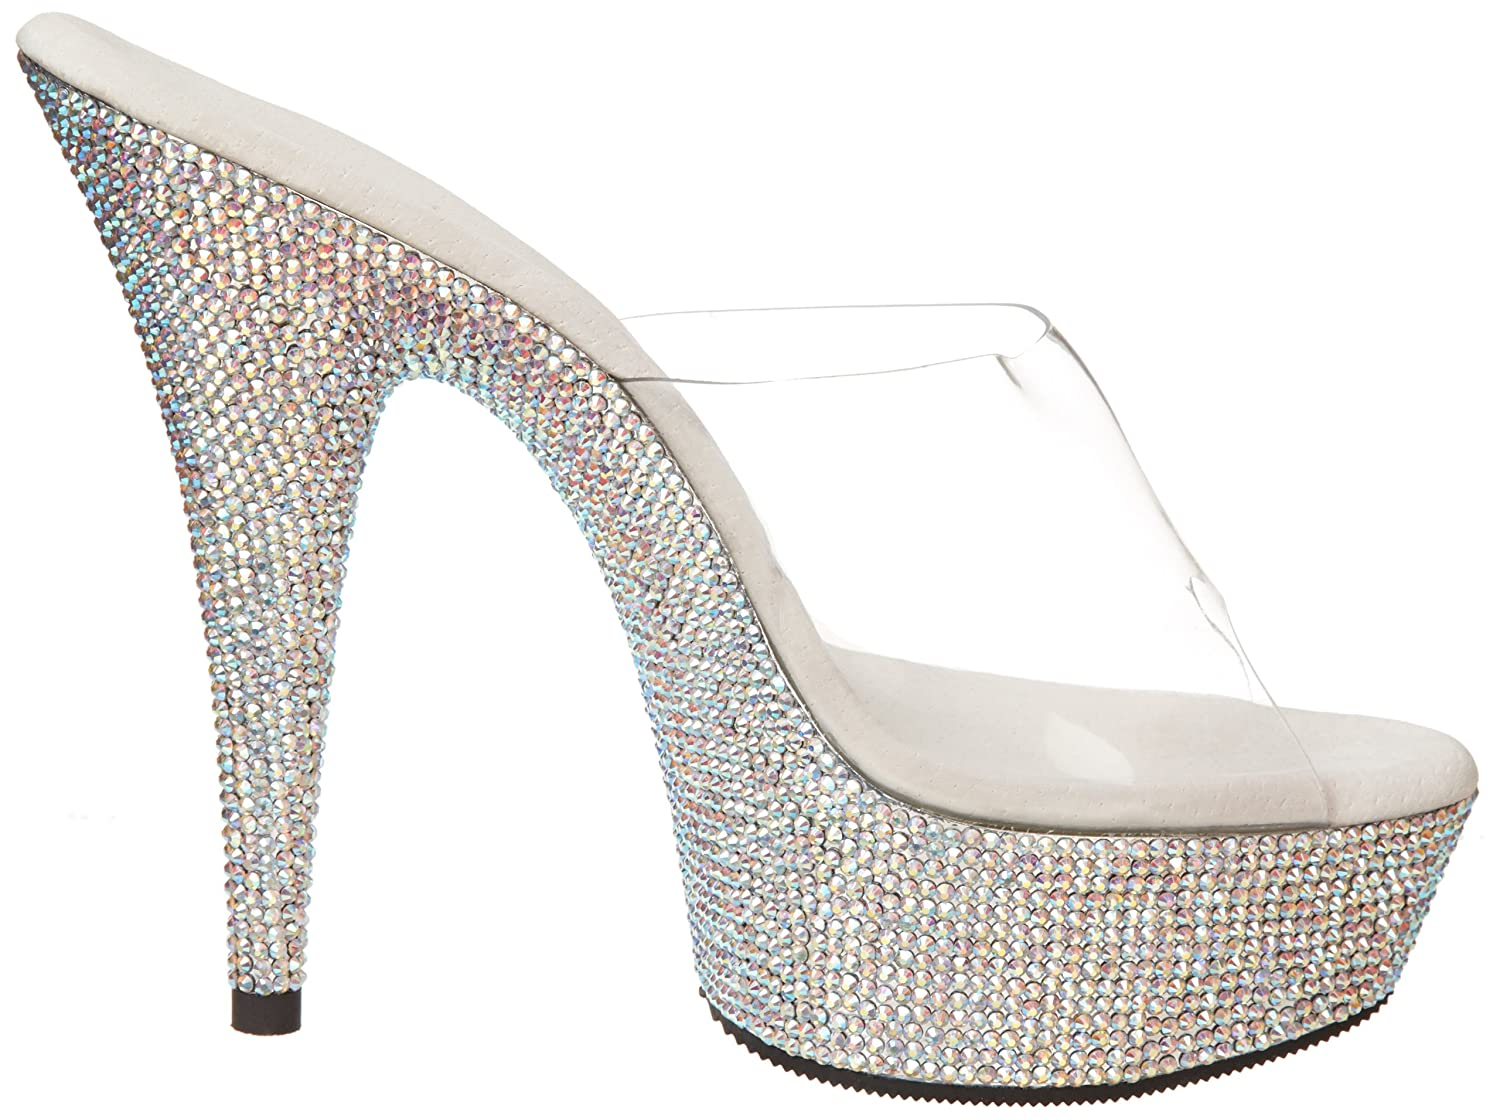 Pleaser B005W3BR5W Women's Bejeweled-601DM Platform Sandal B005W3BR5W Pleaser 10 B(M) US|Clear/Silver Multi 3f7871